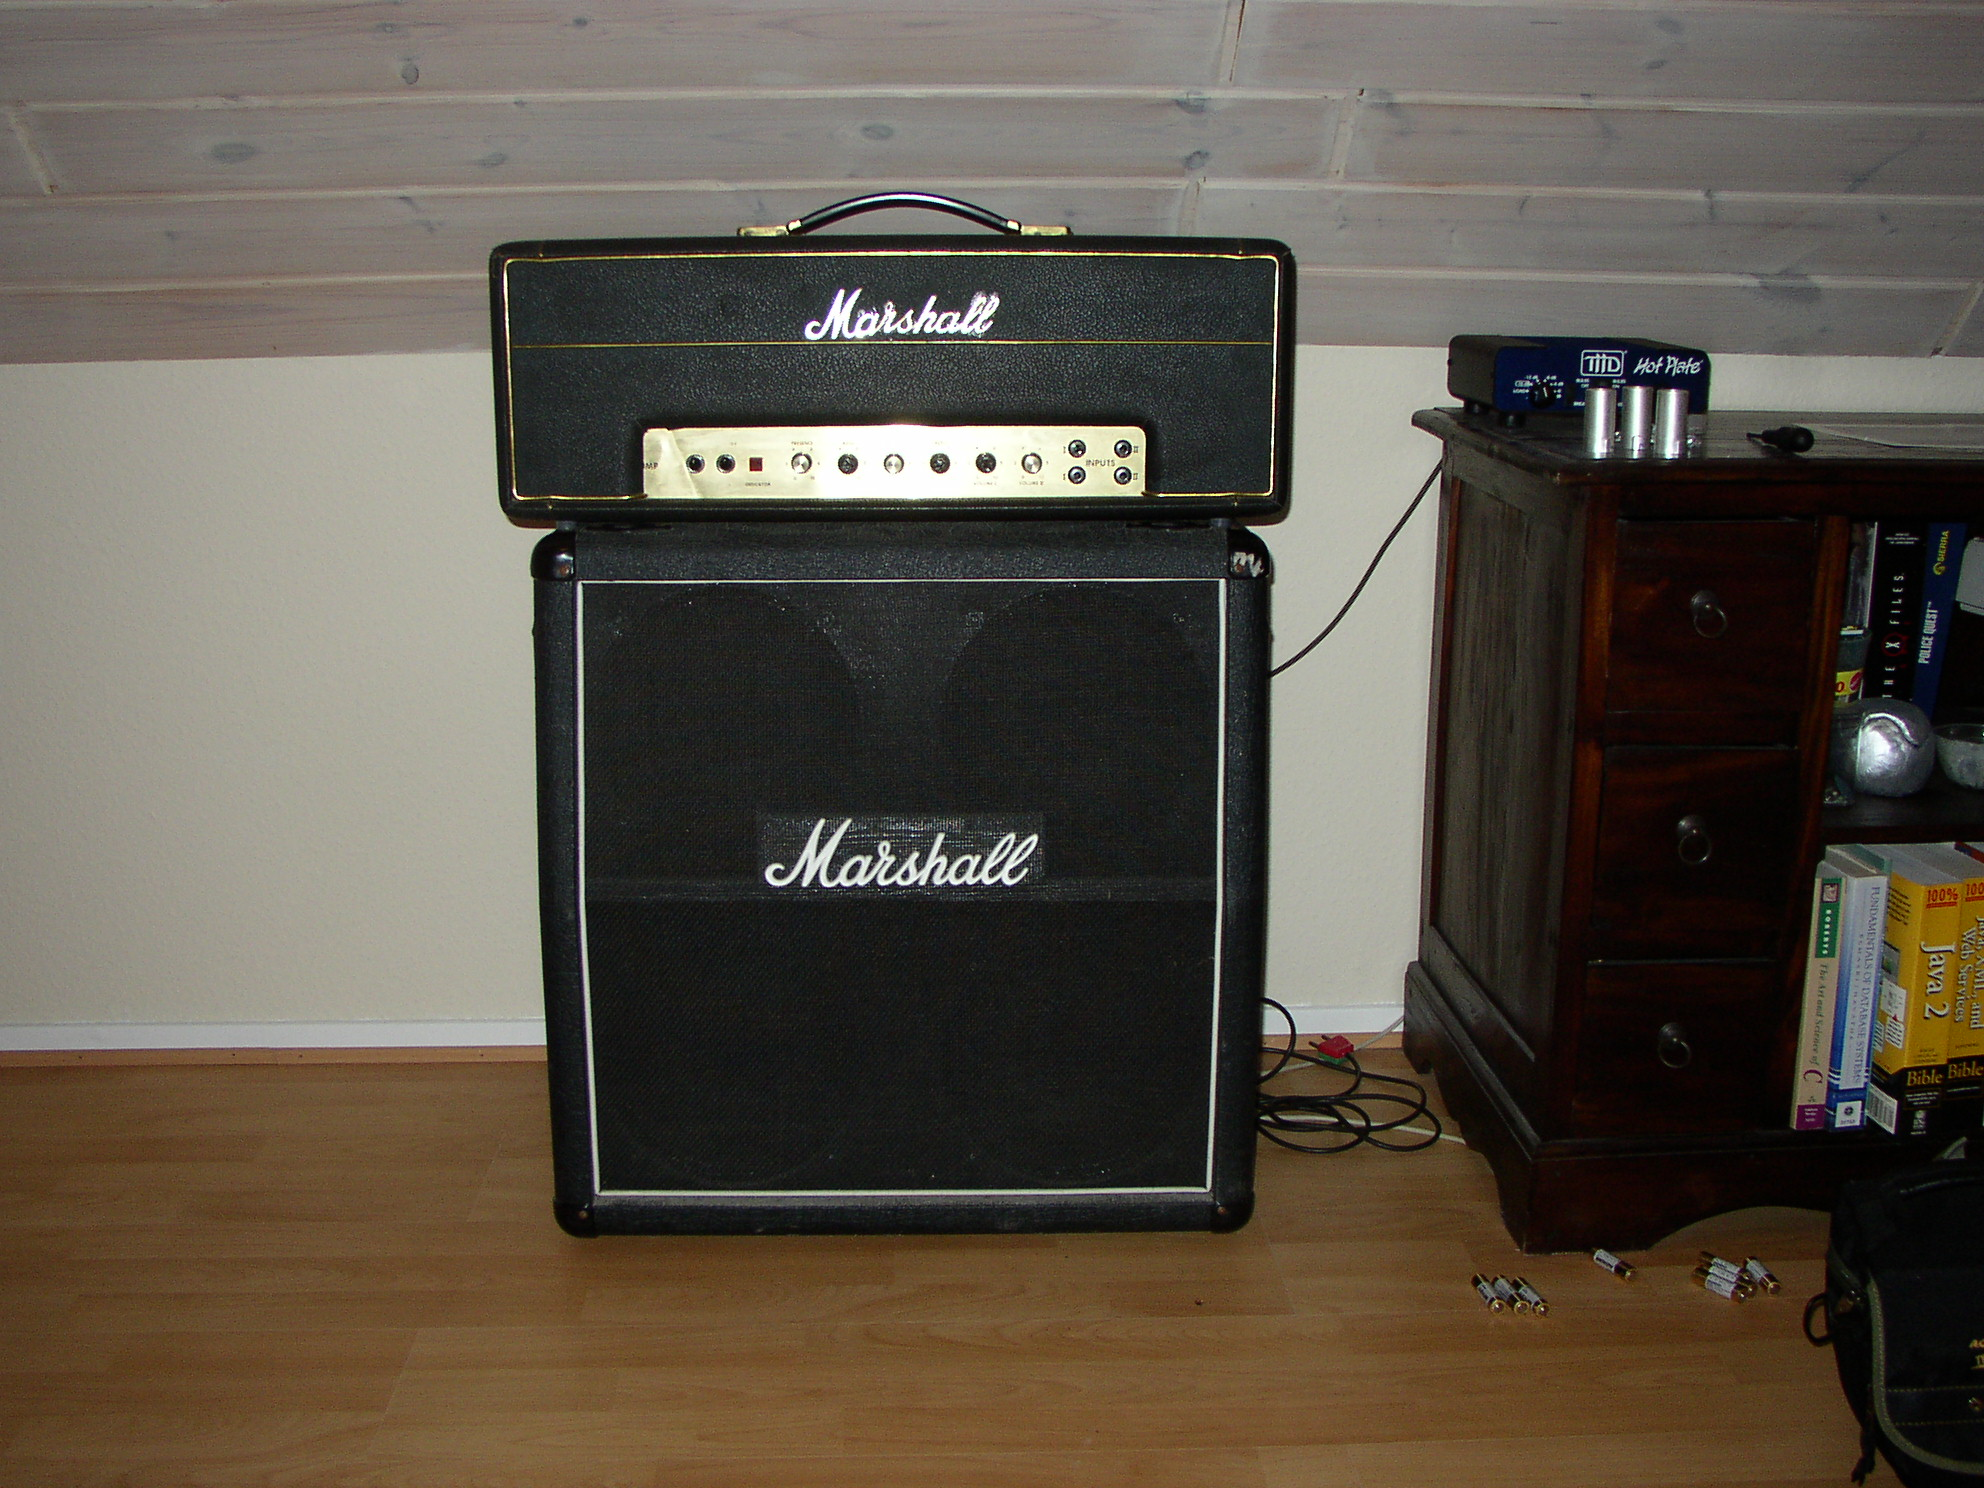 Vintage Amps Bulletin Board • View topic - New amp: '69 model 1987